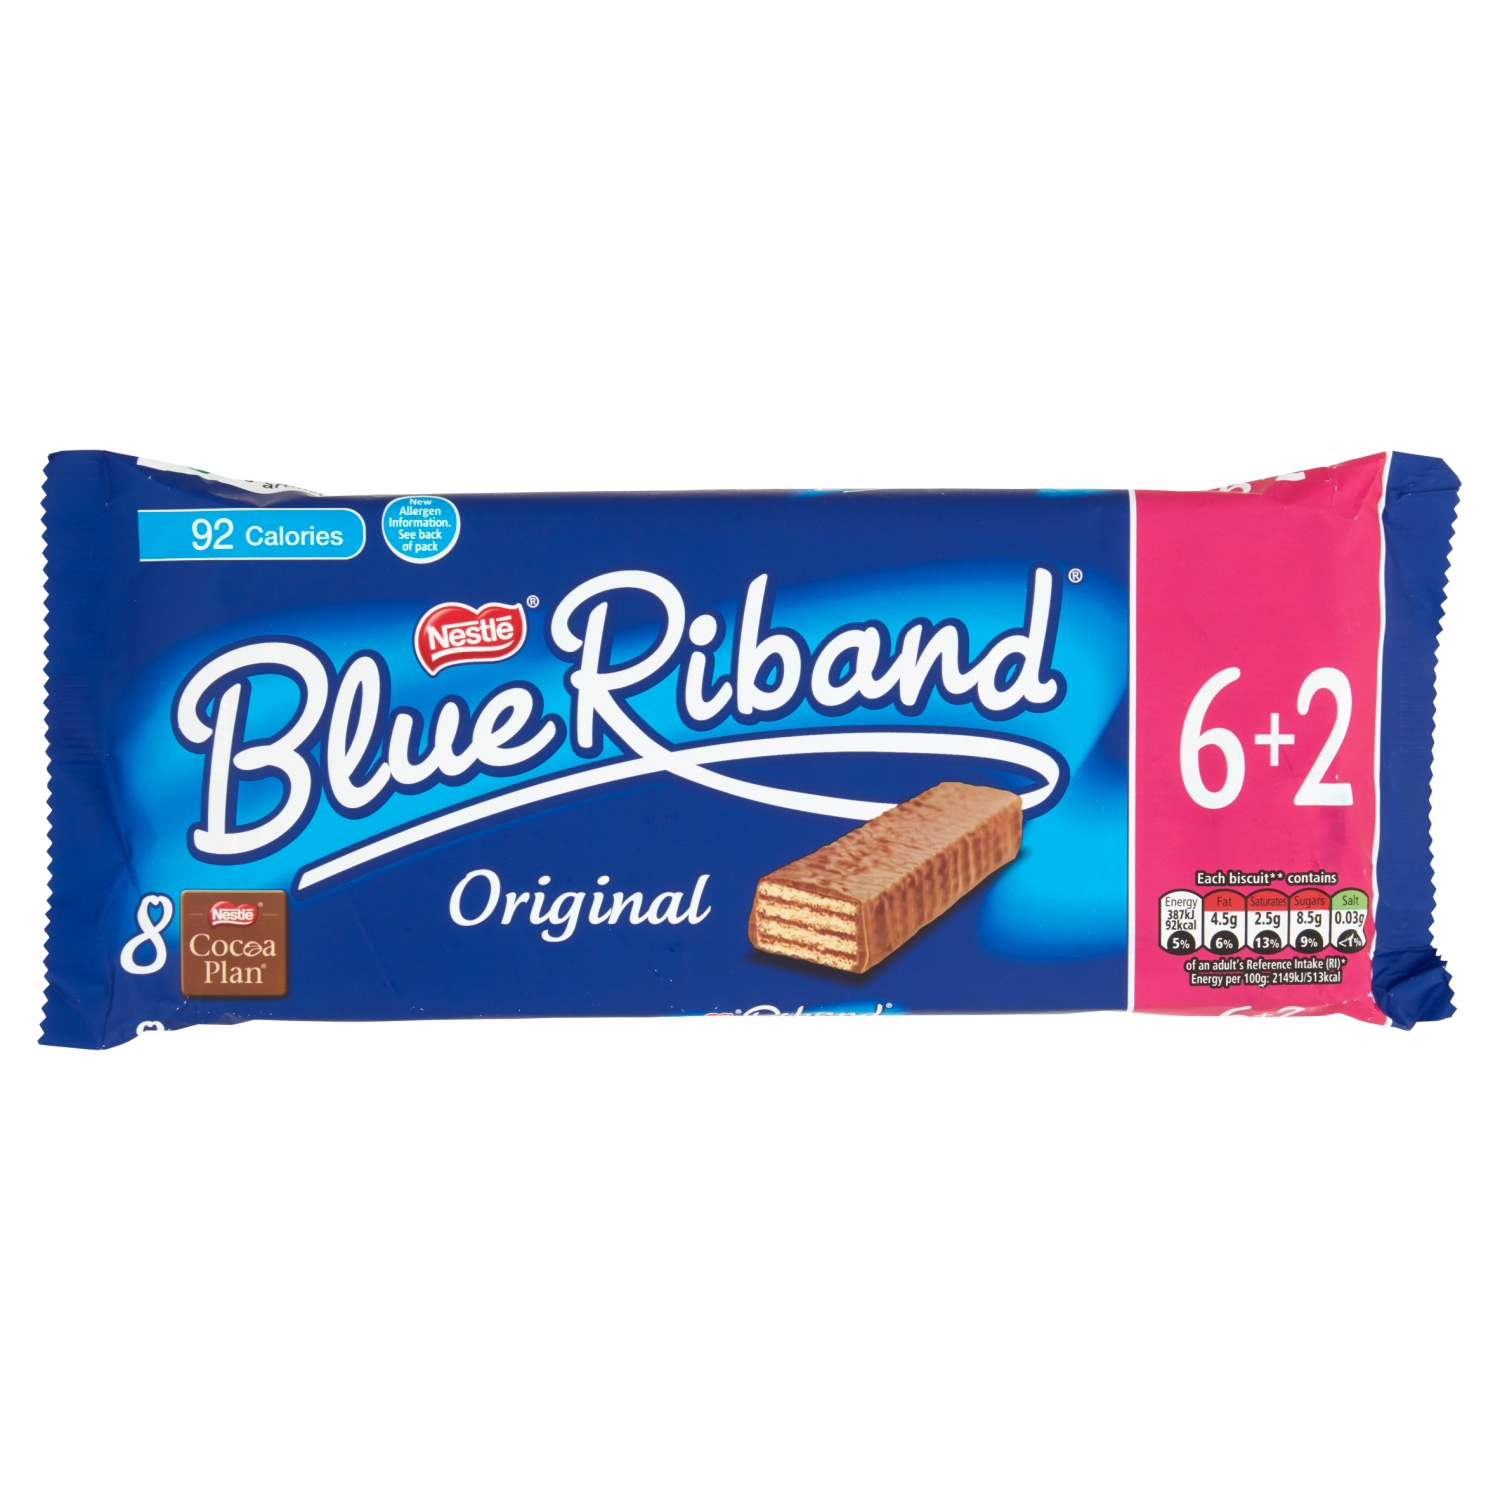 Blue Riband Milk Chocolate Wafer Biscuits Bar Multipack 6+2 Pack